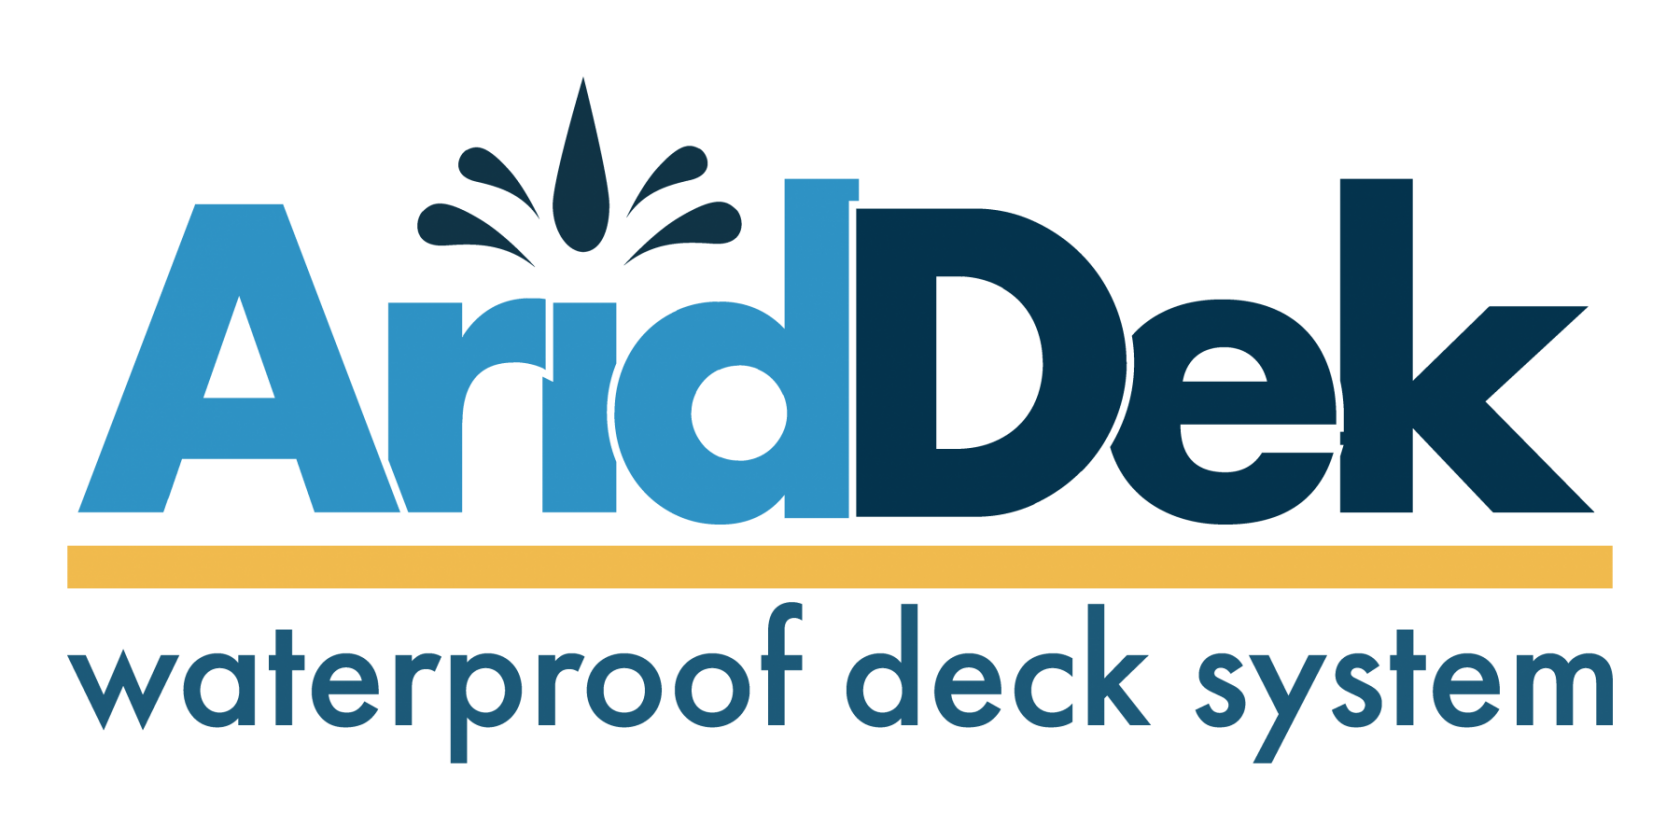 AridDek waterproof decking board system large logo